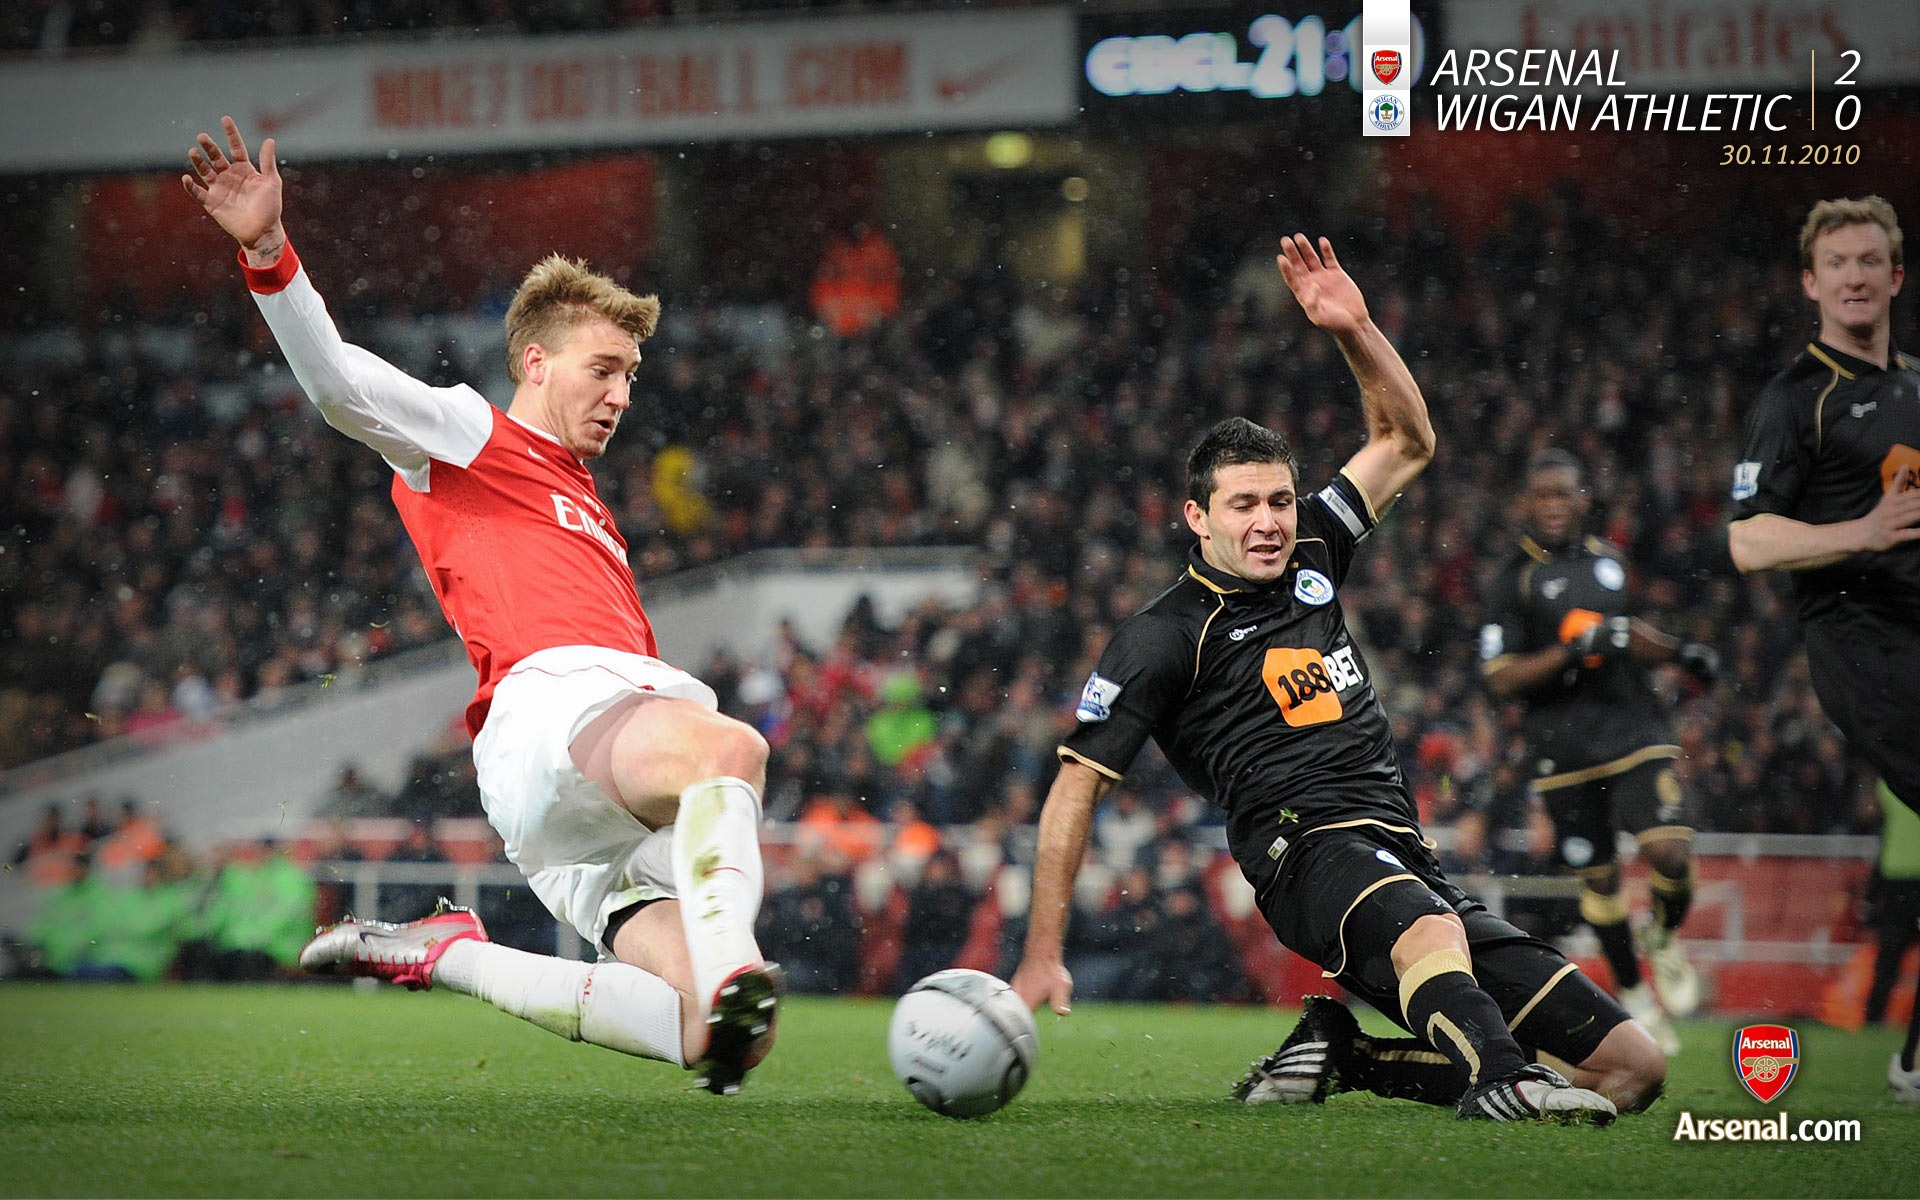 Arsenal 2-0 Wigan Athletic Wallpapers Preview